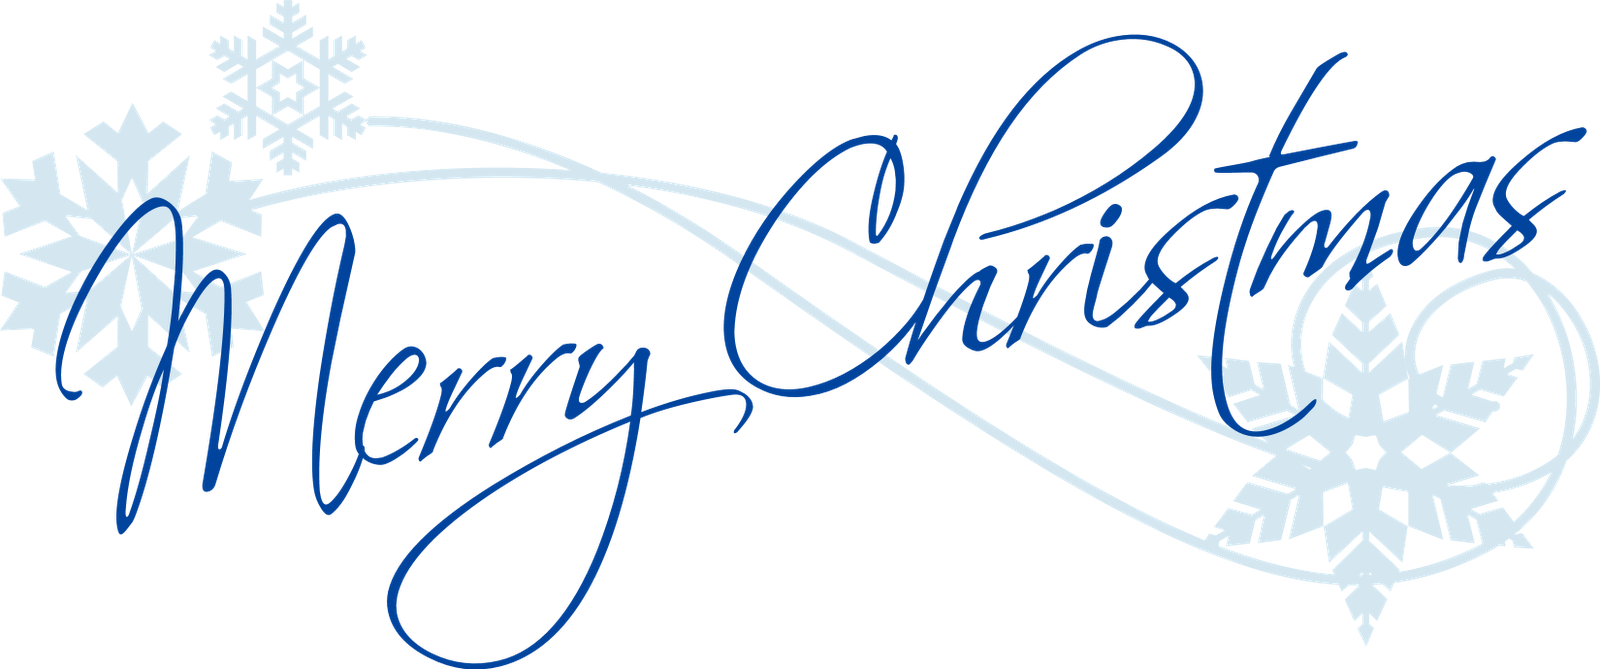 Merry Christmas from CBM Corporate 2016